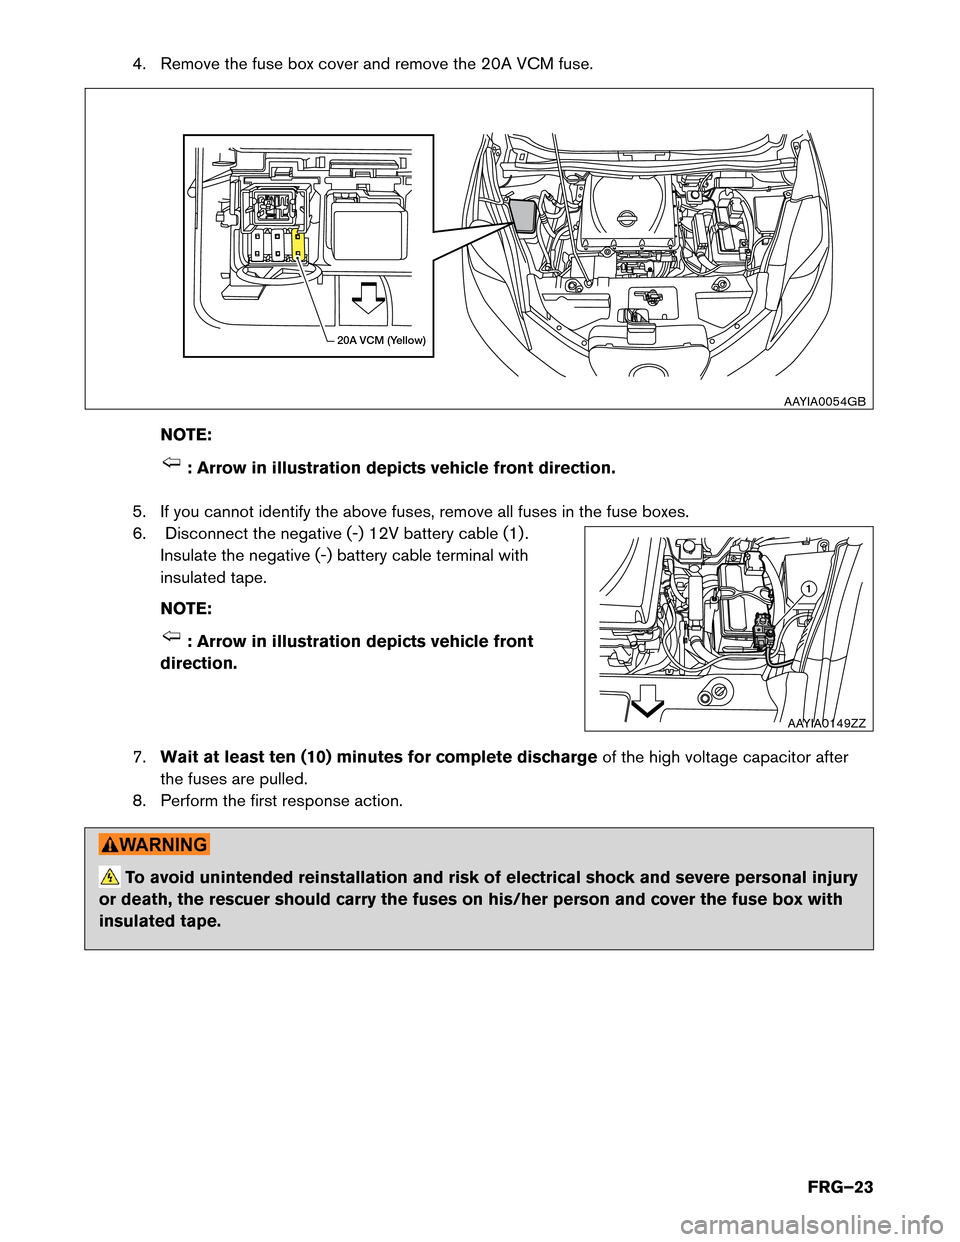 Fuses Nissan Leaf 2015 1g First Responders Guide Battery Fuse Box Page 23